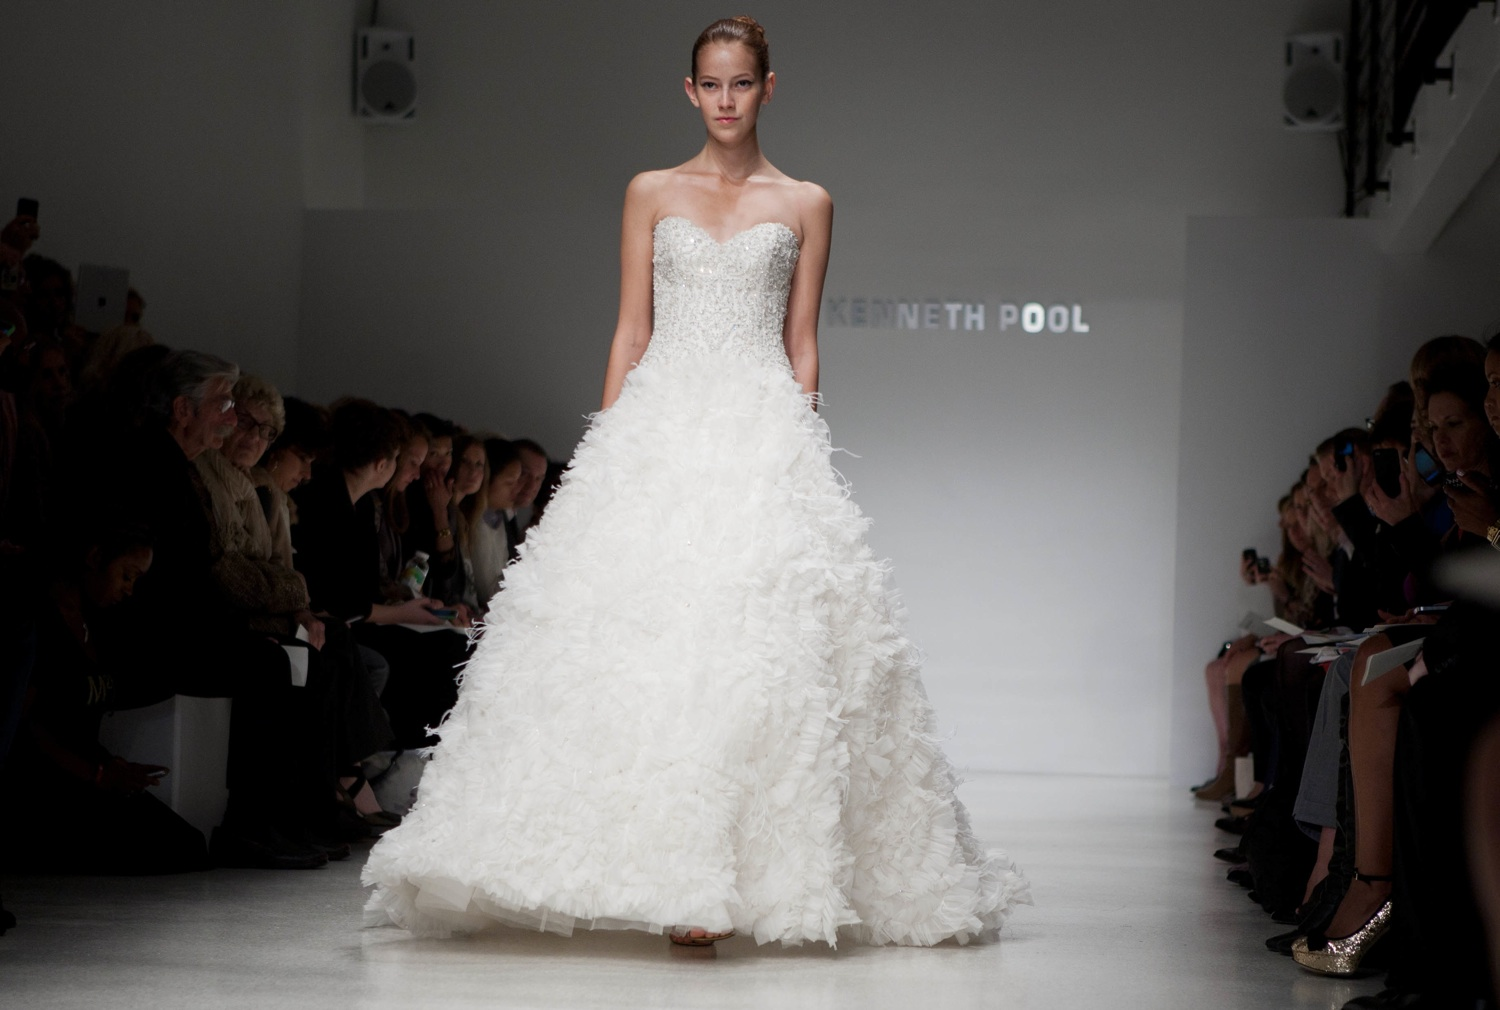 Kenneth-pool-wedding-dress-2012-bridal-gowns-11.original